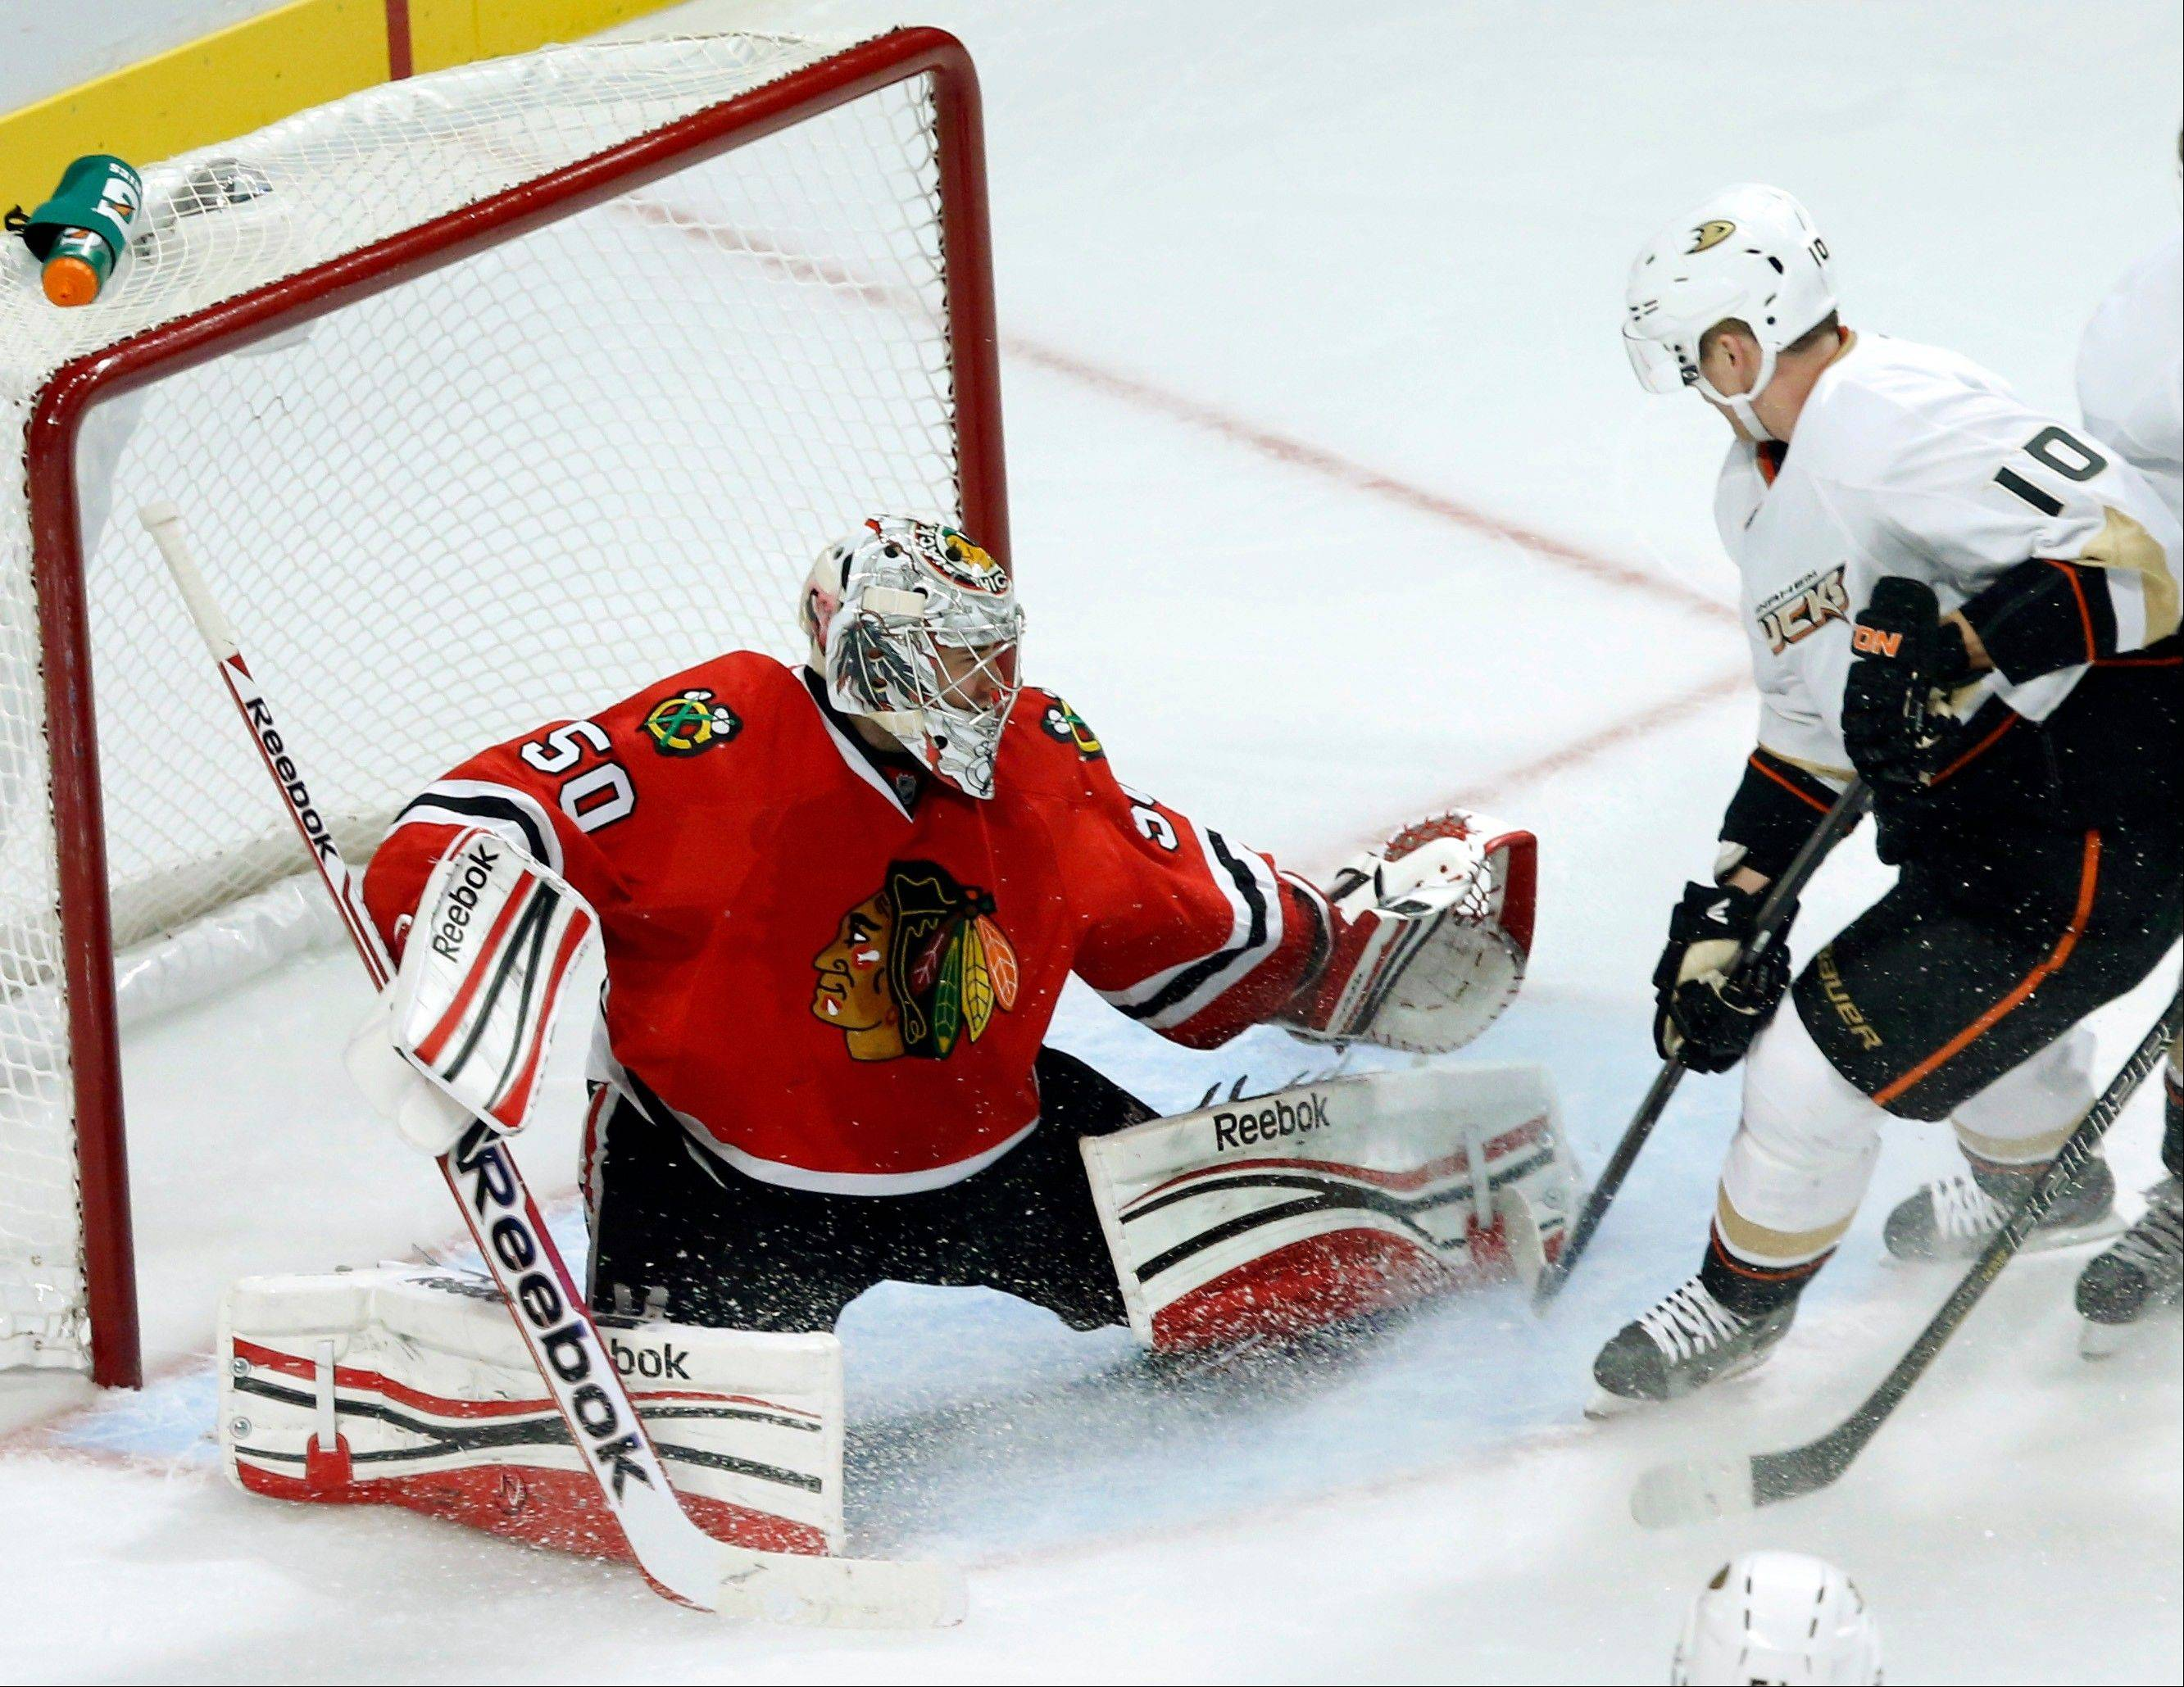 Blackhawks goalie Corey Crawford makes a save on a rebound attempt by Anaheim Ducks right wing Corey Perry during the second period Tuesday night at the United Center.